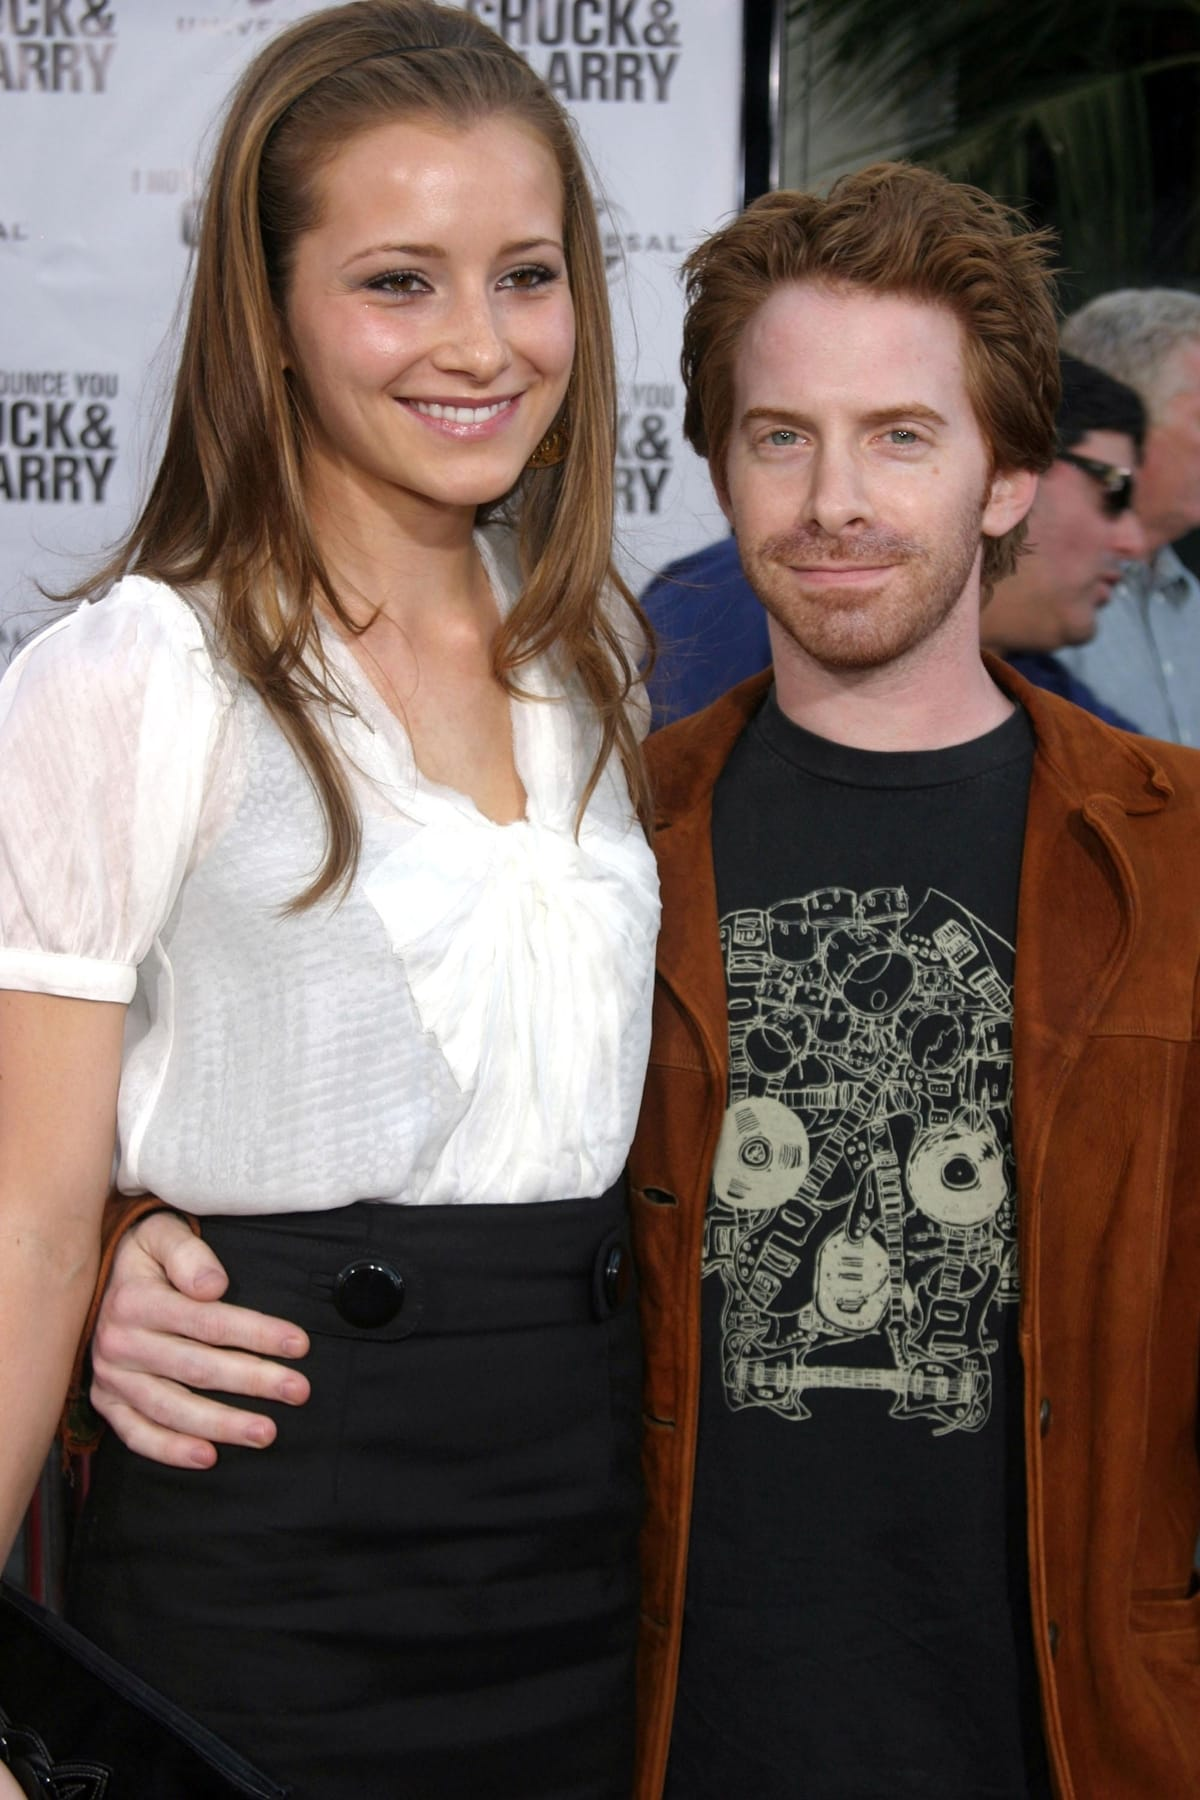 cSeth Green and Candace Bailey dated for about a year before splitting in November 2007